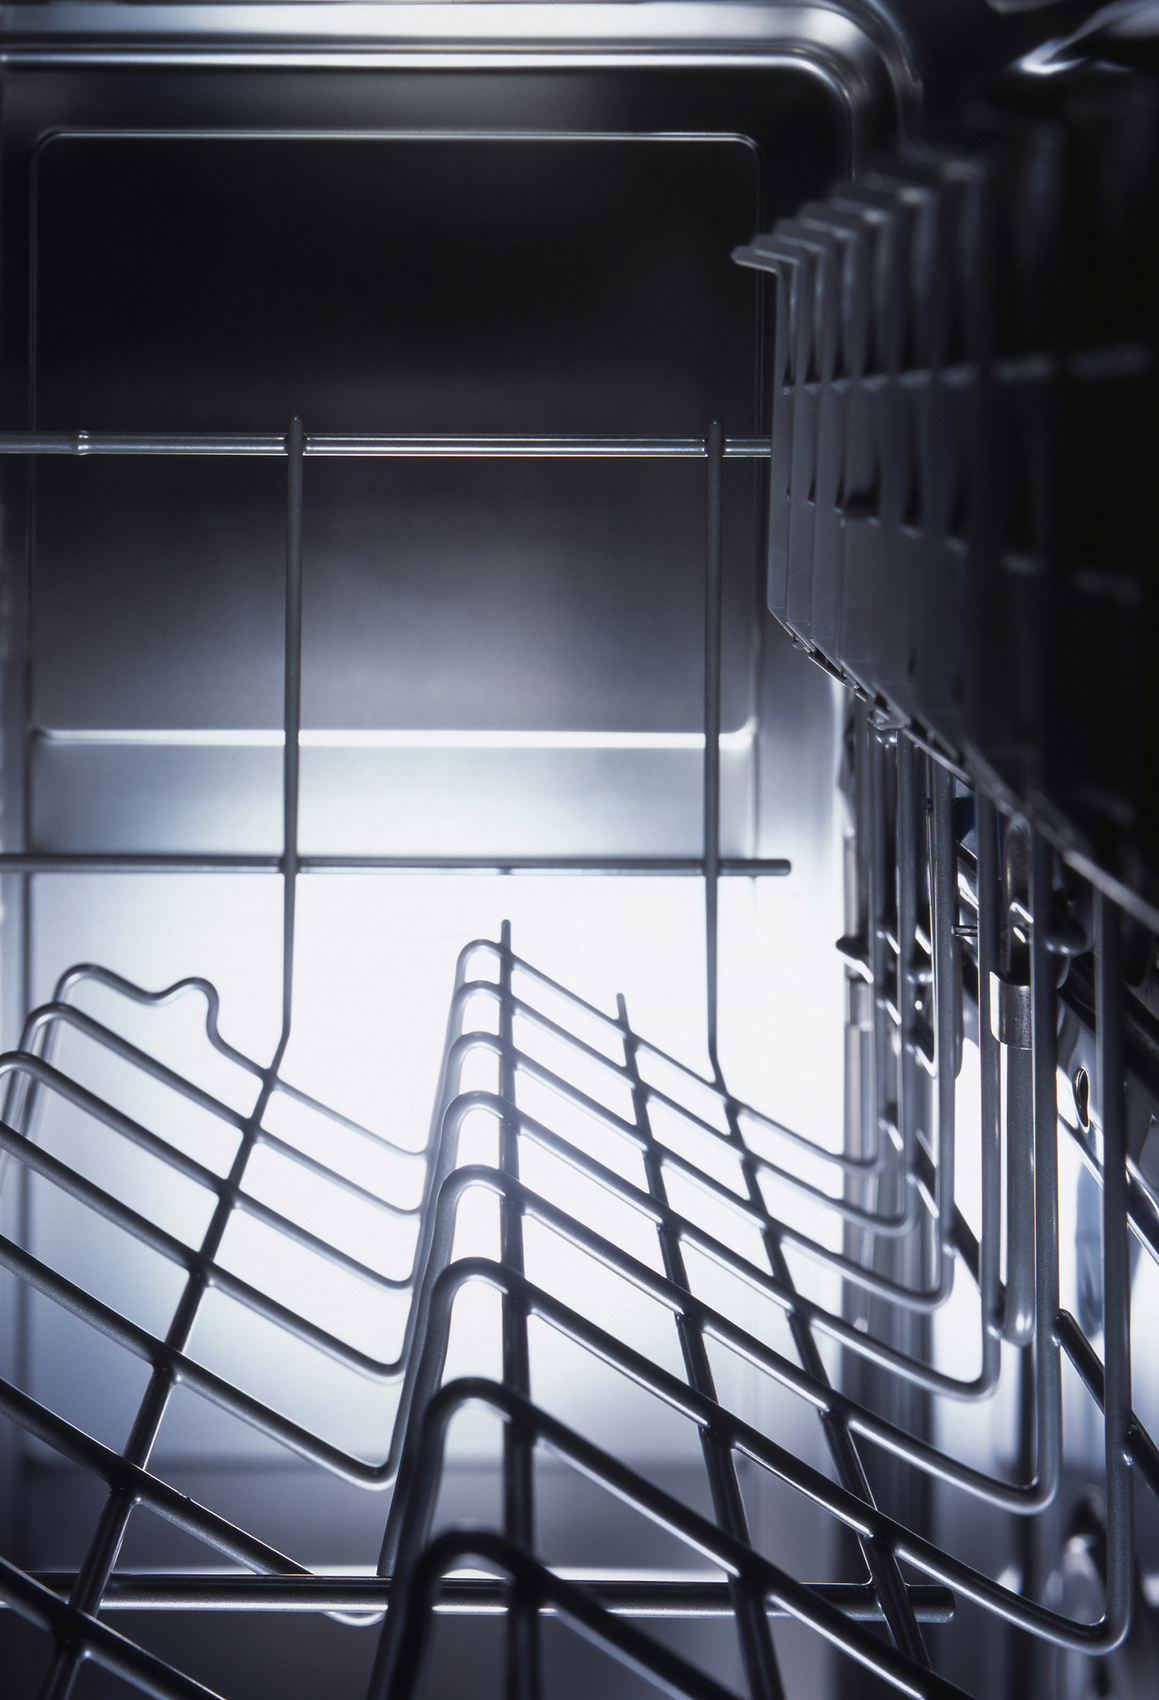 Detail of the inside of a dishwasher